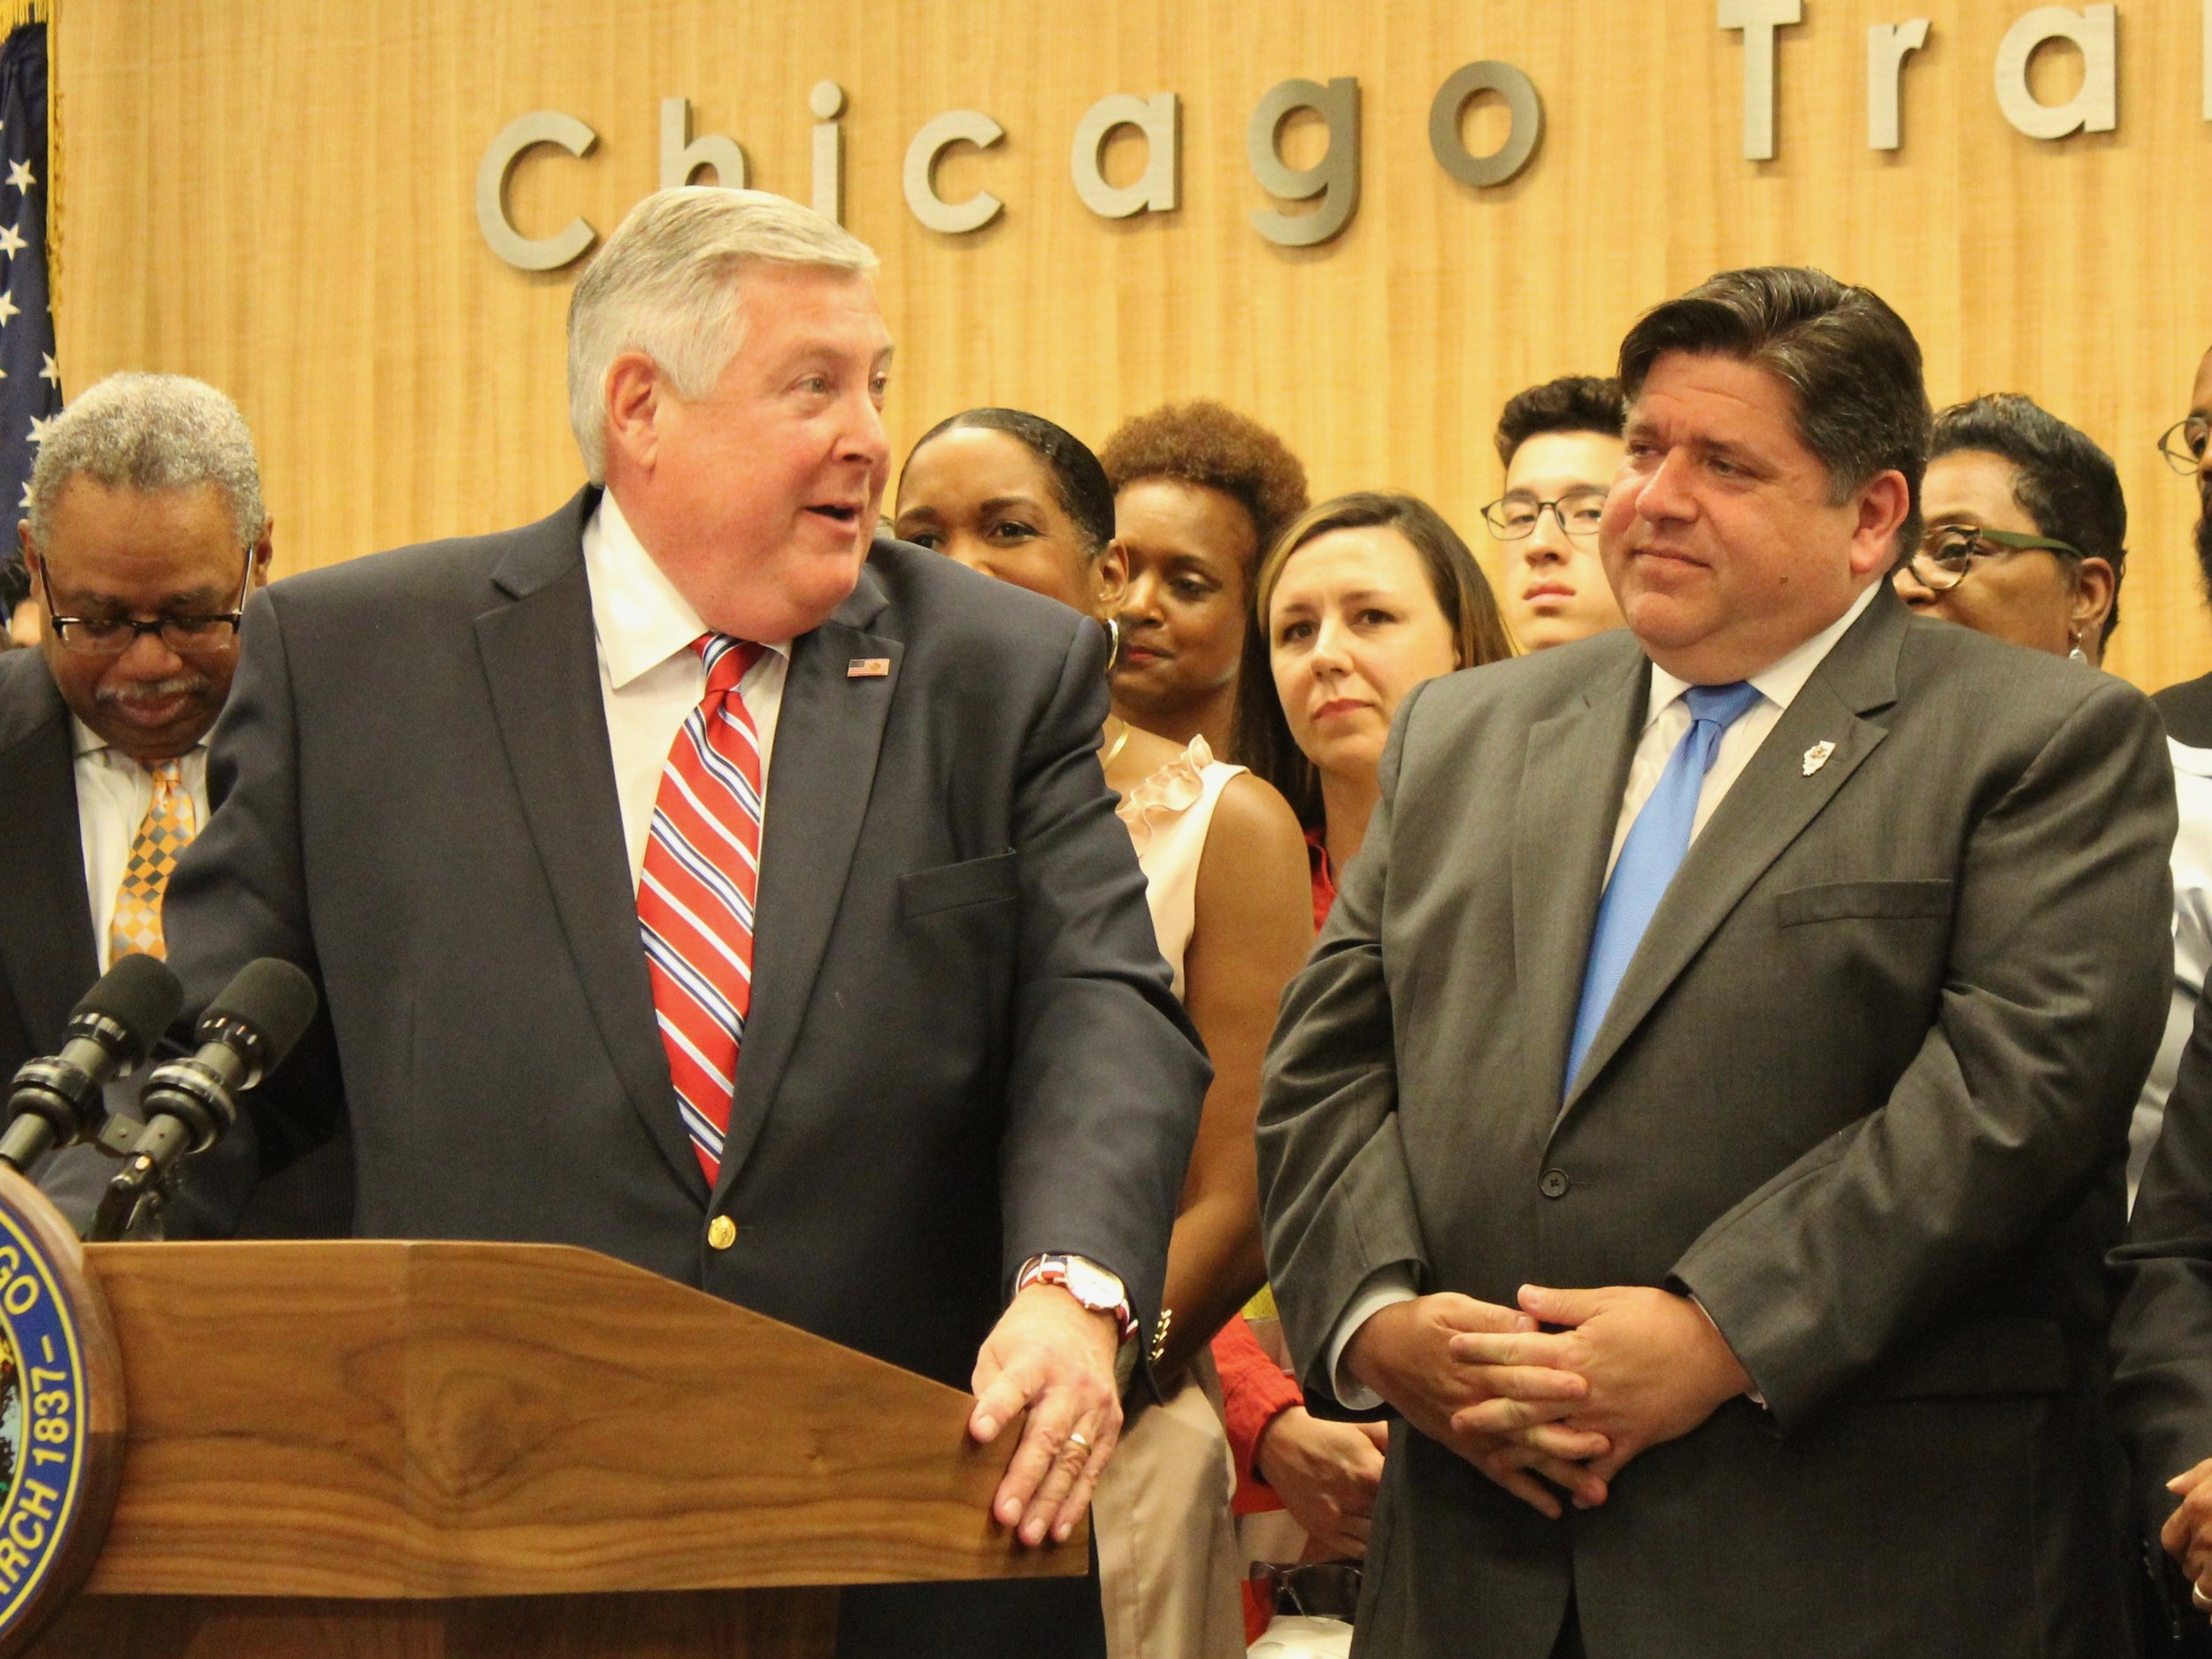 """RTA head Kirk Dillard told Gov. Pritzker, """"Where transit goes, the economy and the community grows."""" (One Illinois/Ted Cox)"""